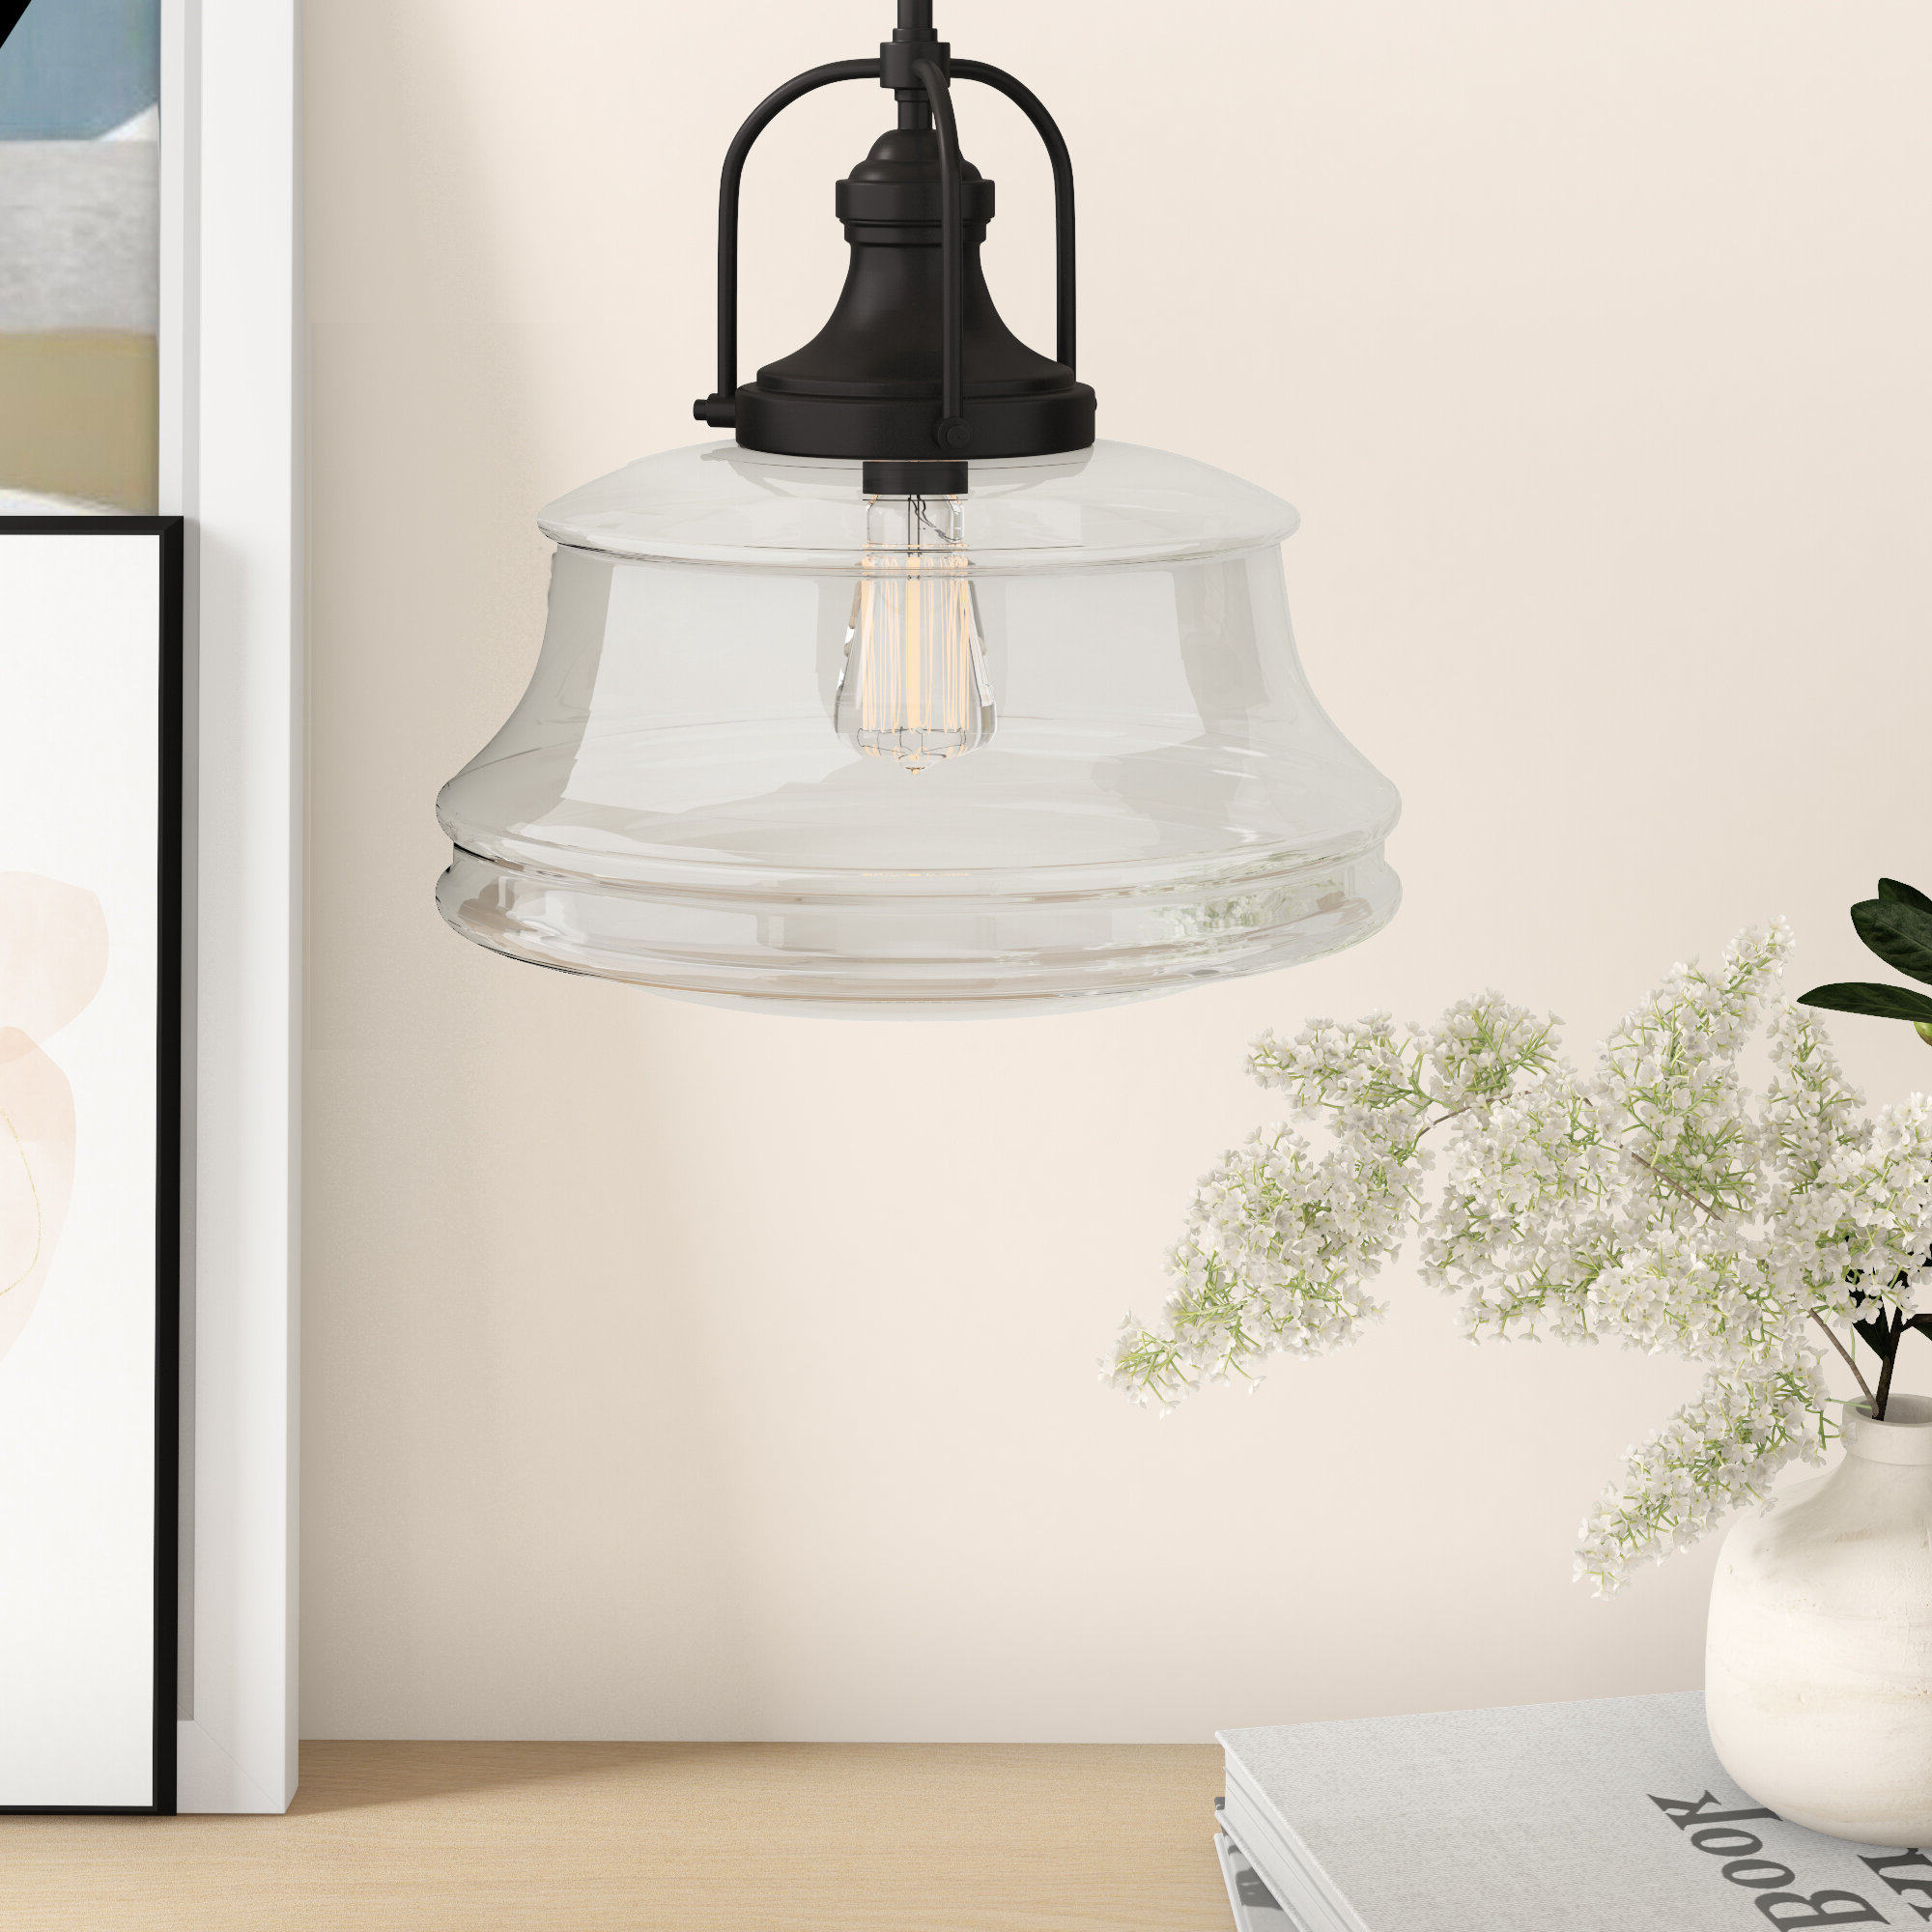 Newest Nadine 1-Light Single Schoolhouse Pendant within 1-Light Single Schoolhouse Pendants